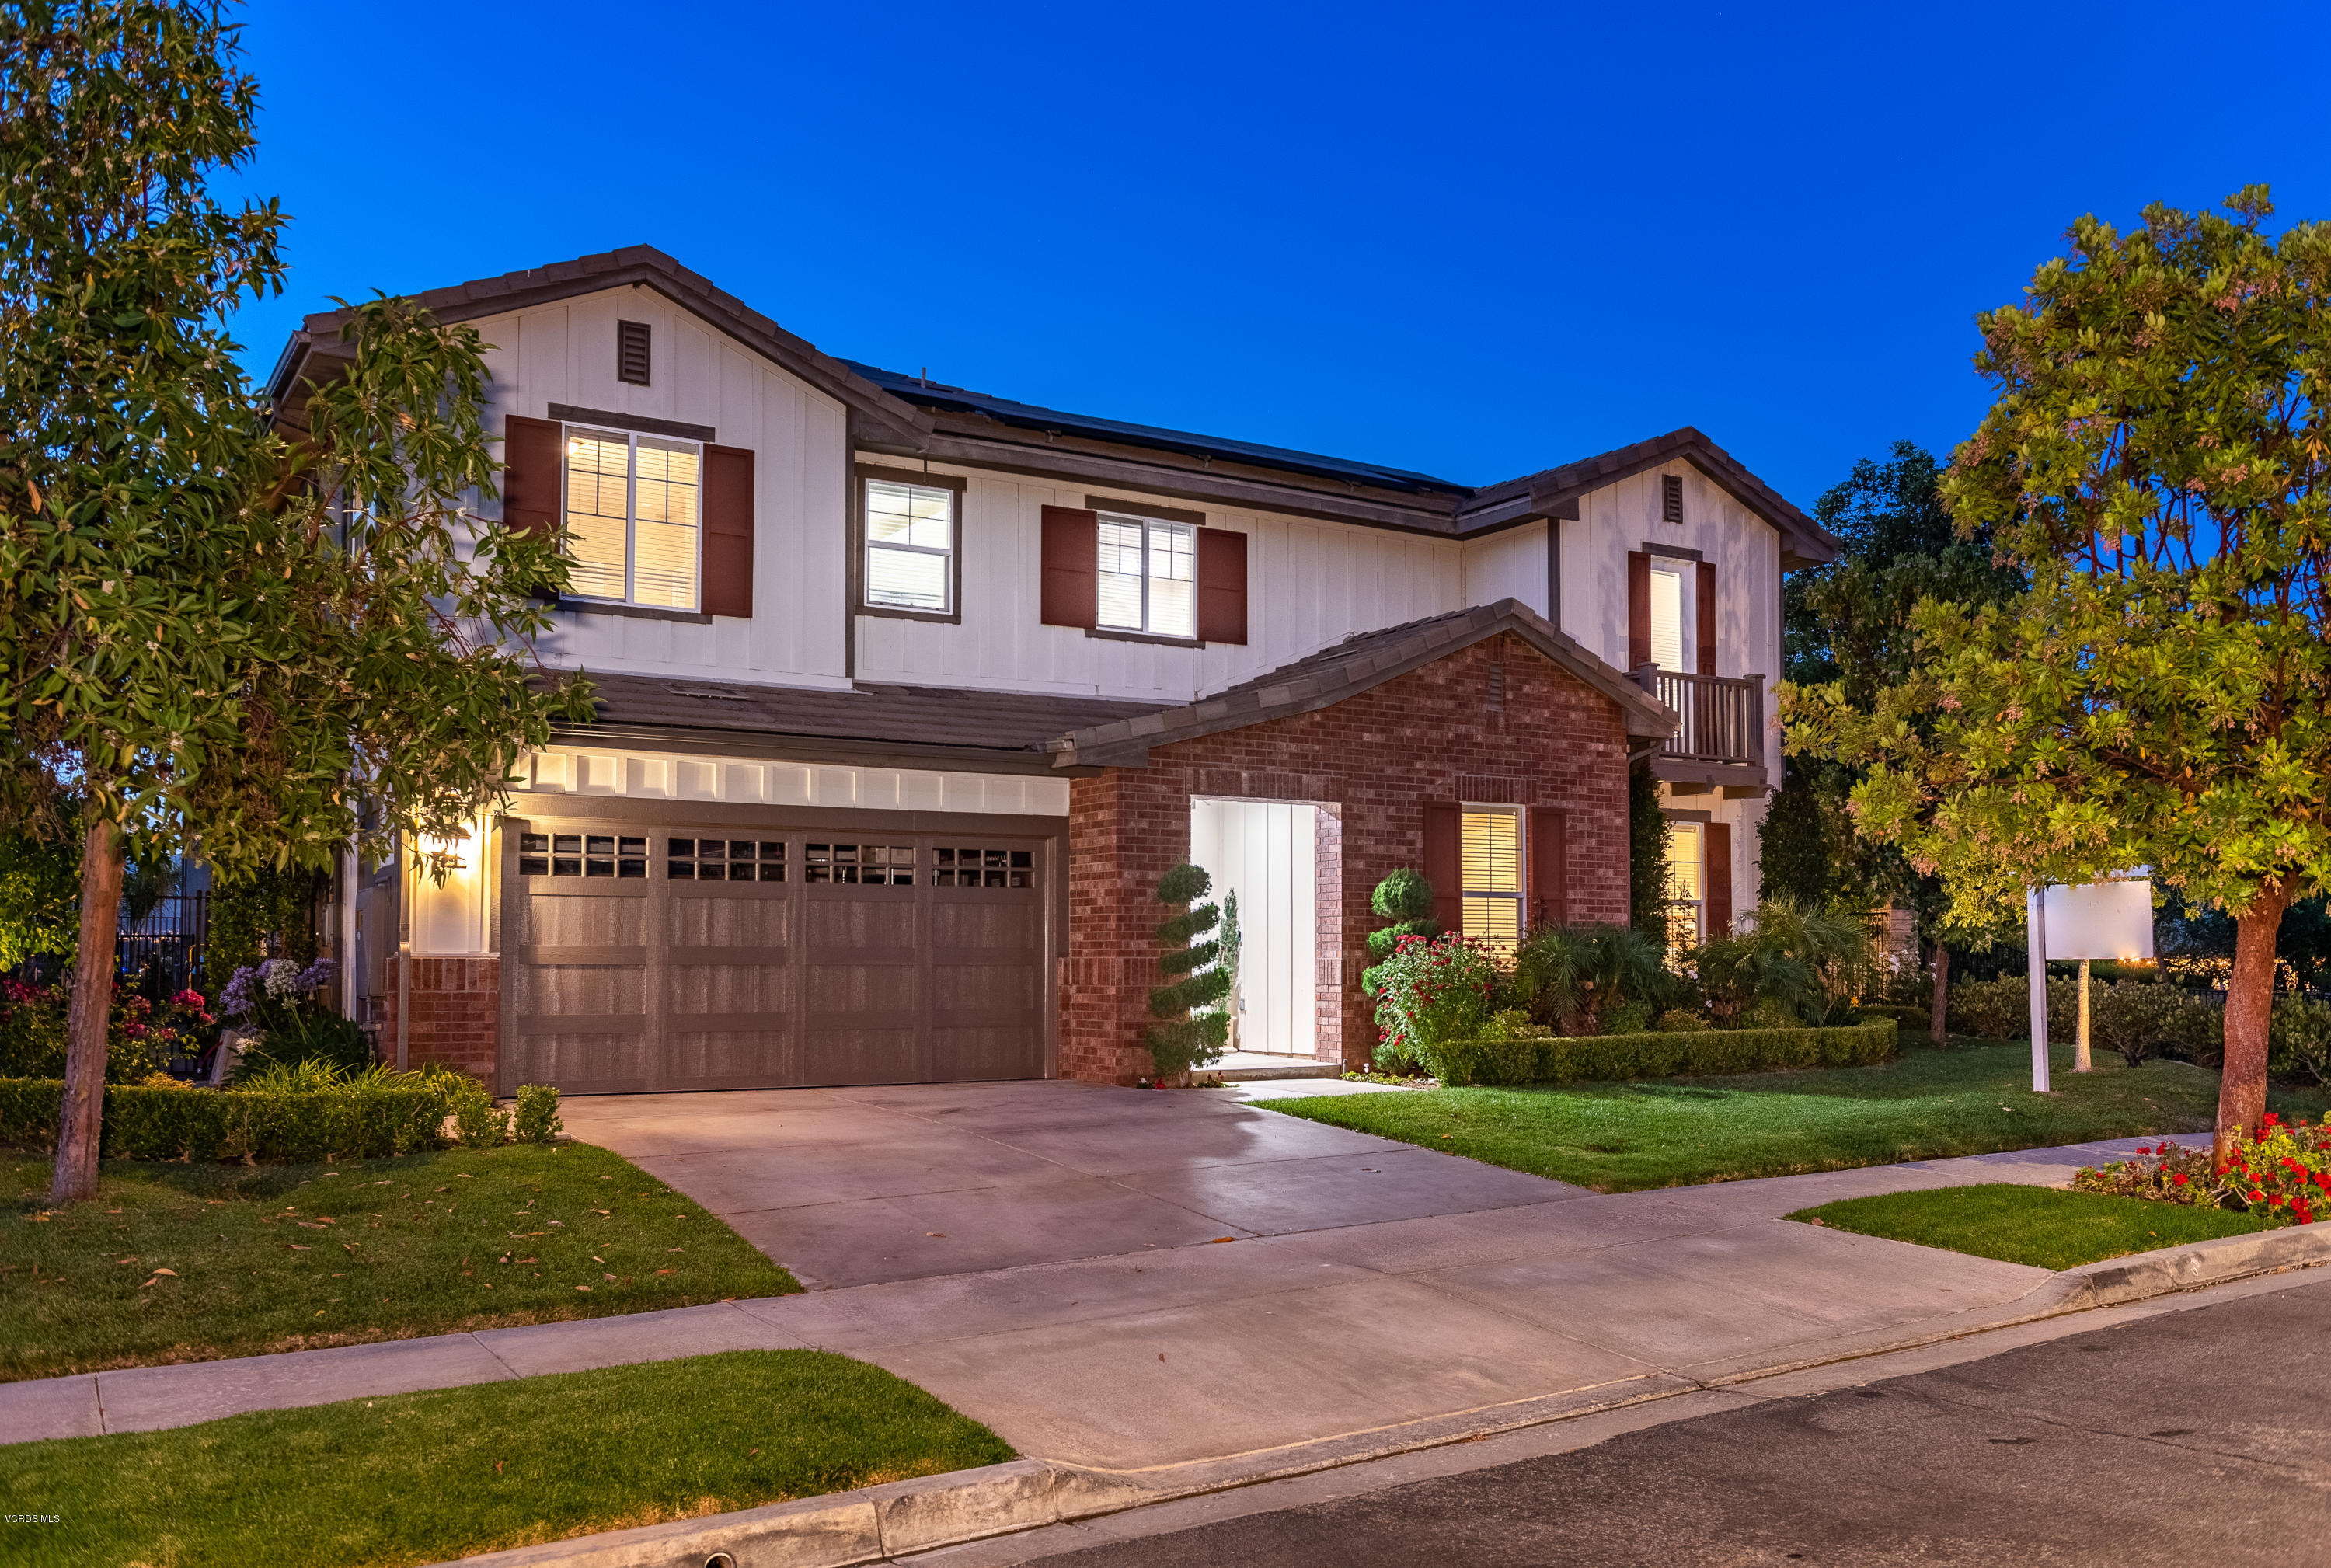 1219 Wetherby Street, Simi Valley, California